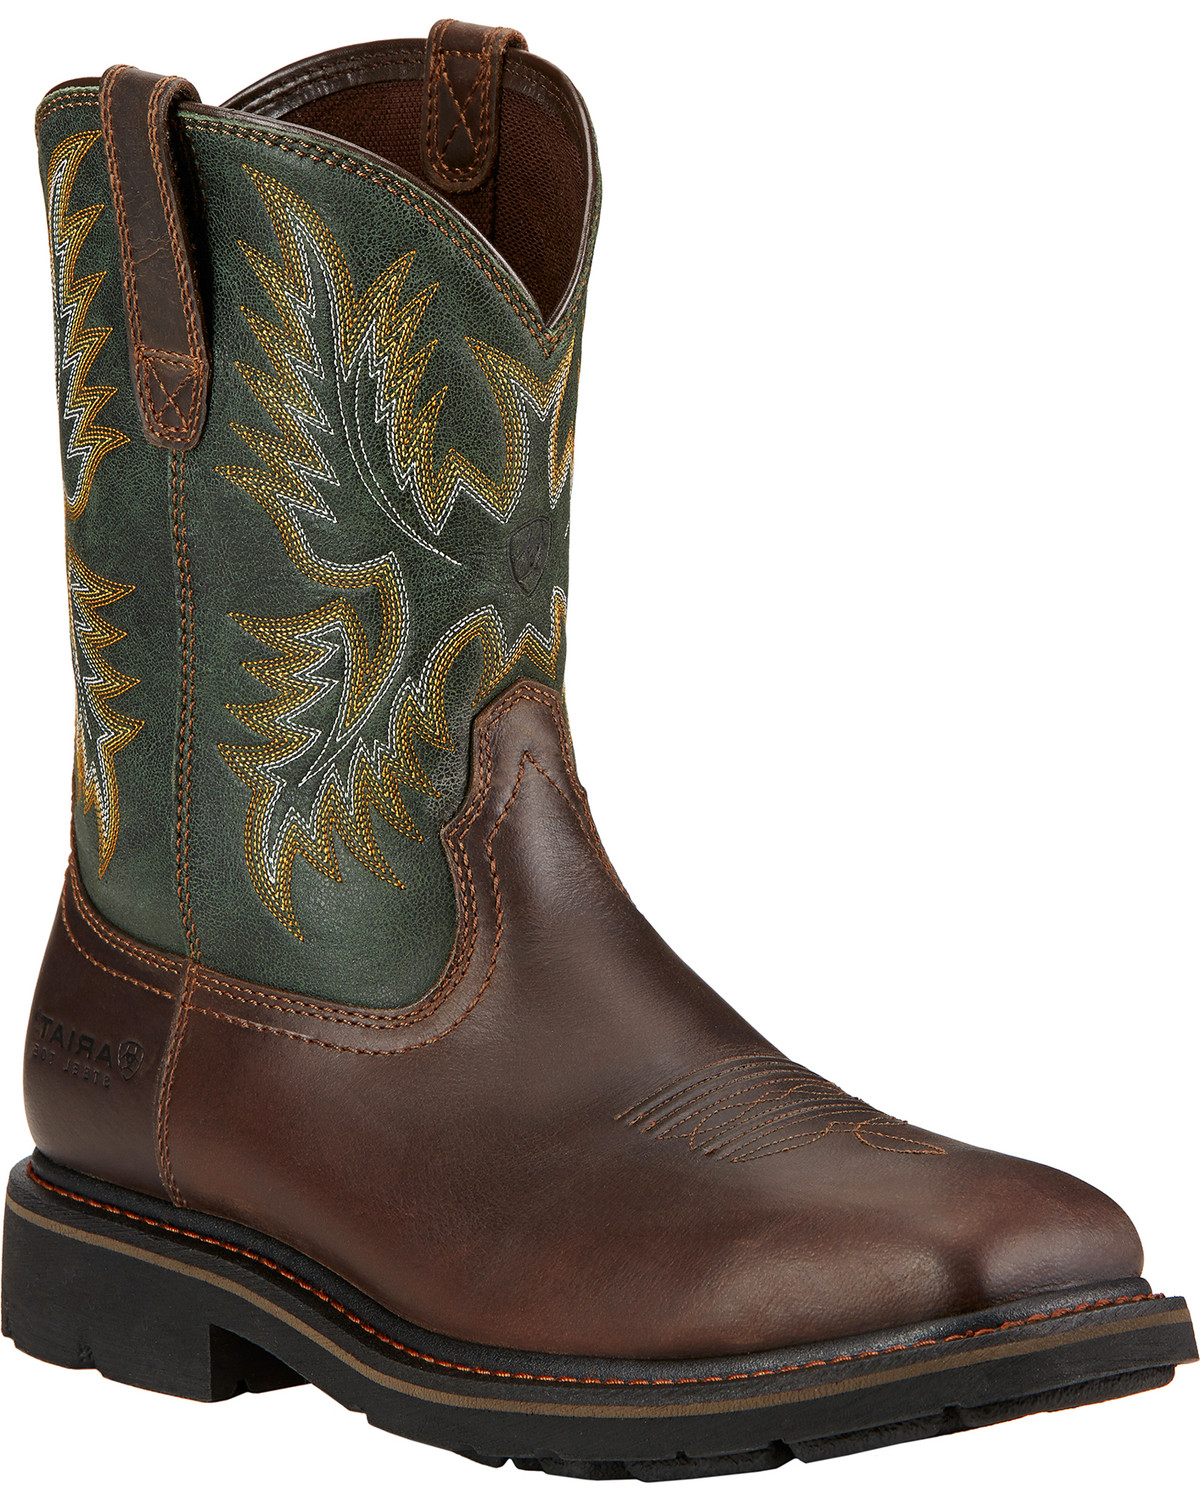 2448202154b Ariat Men's Sierra Steel Toe Work Boots